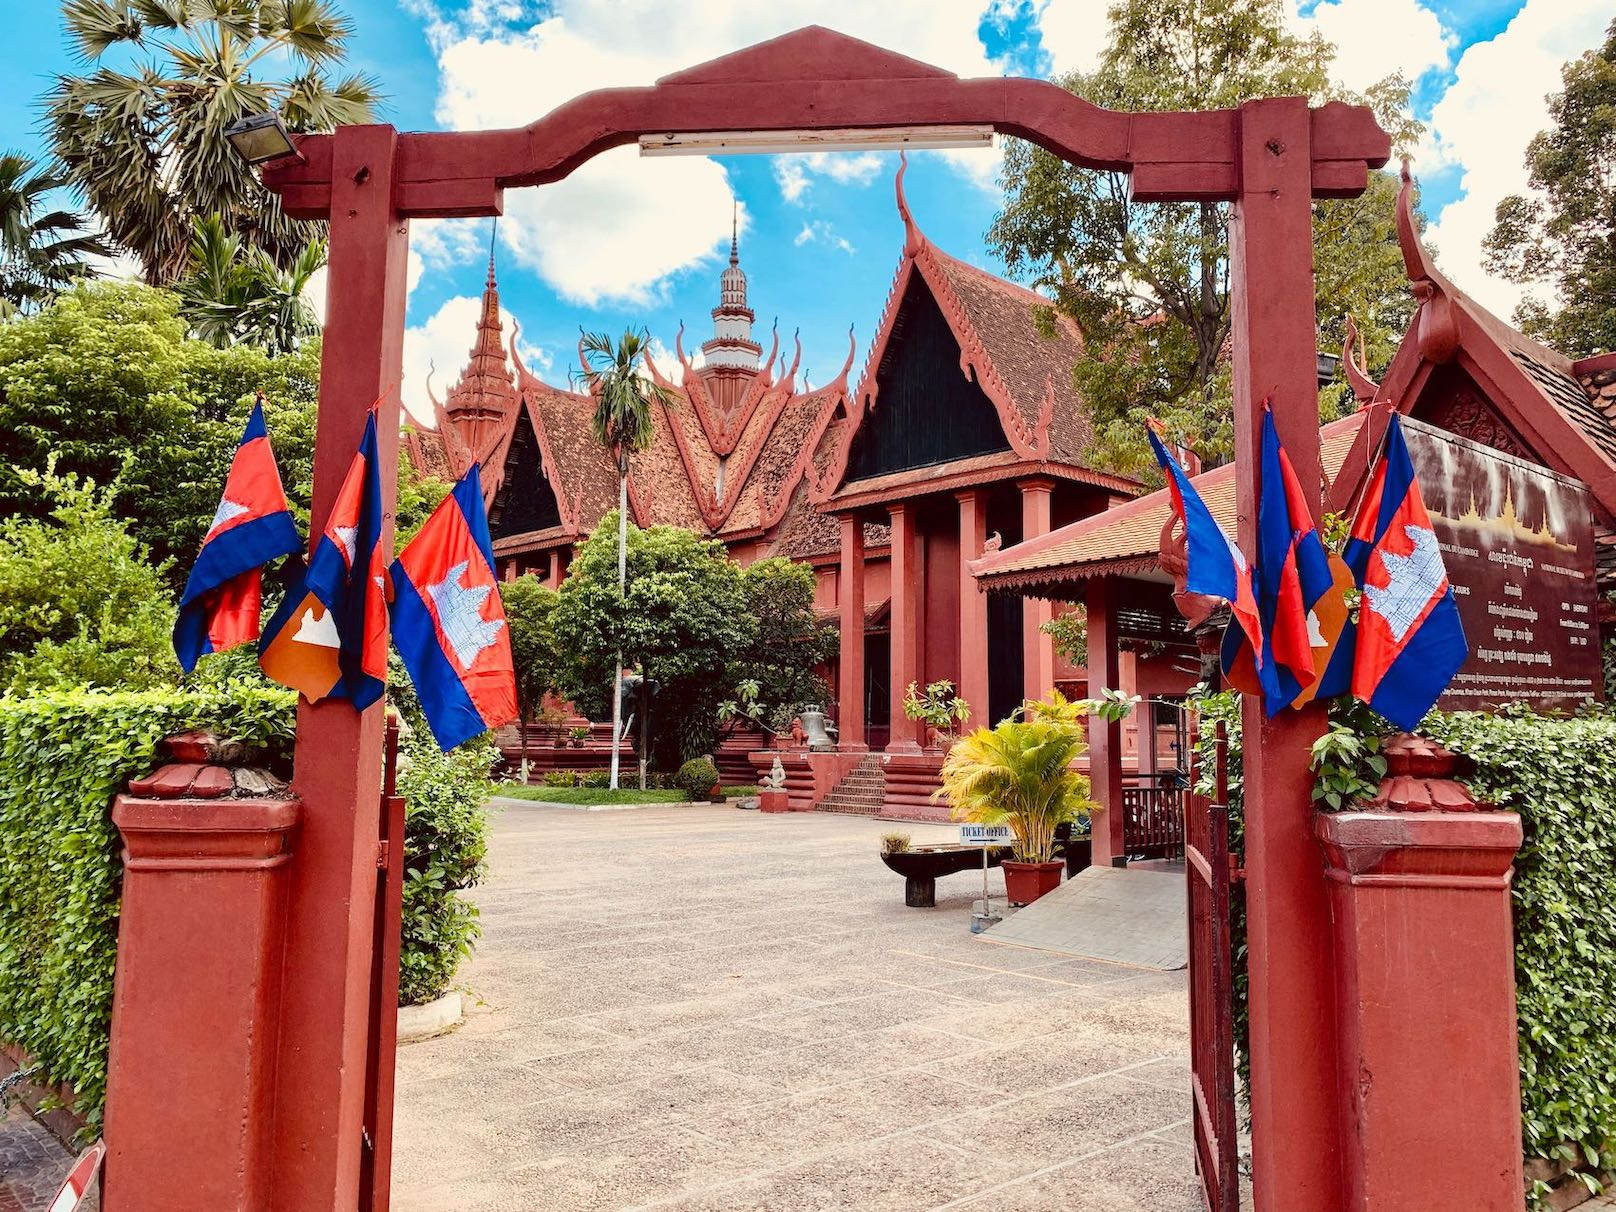 Entrance gate National Museum of Cambodia